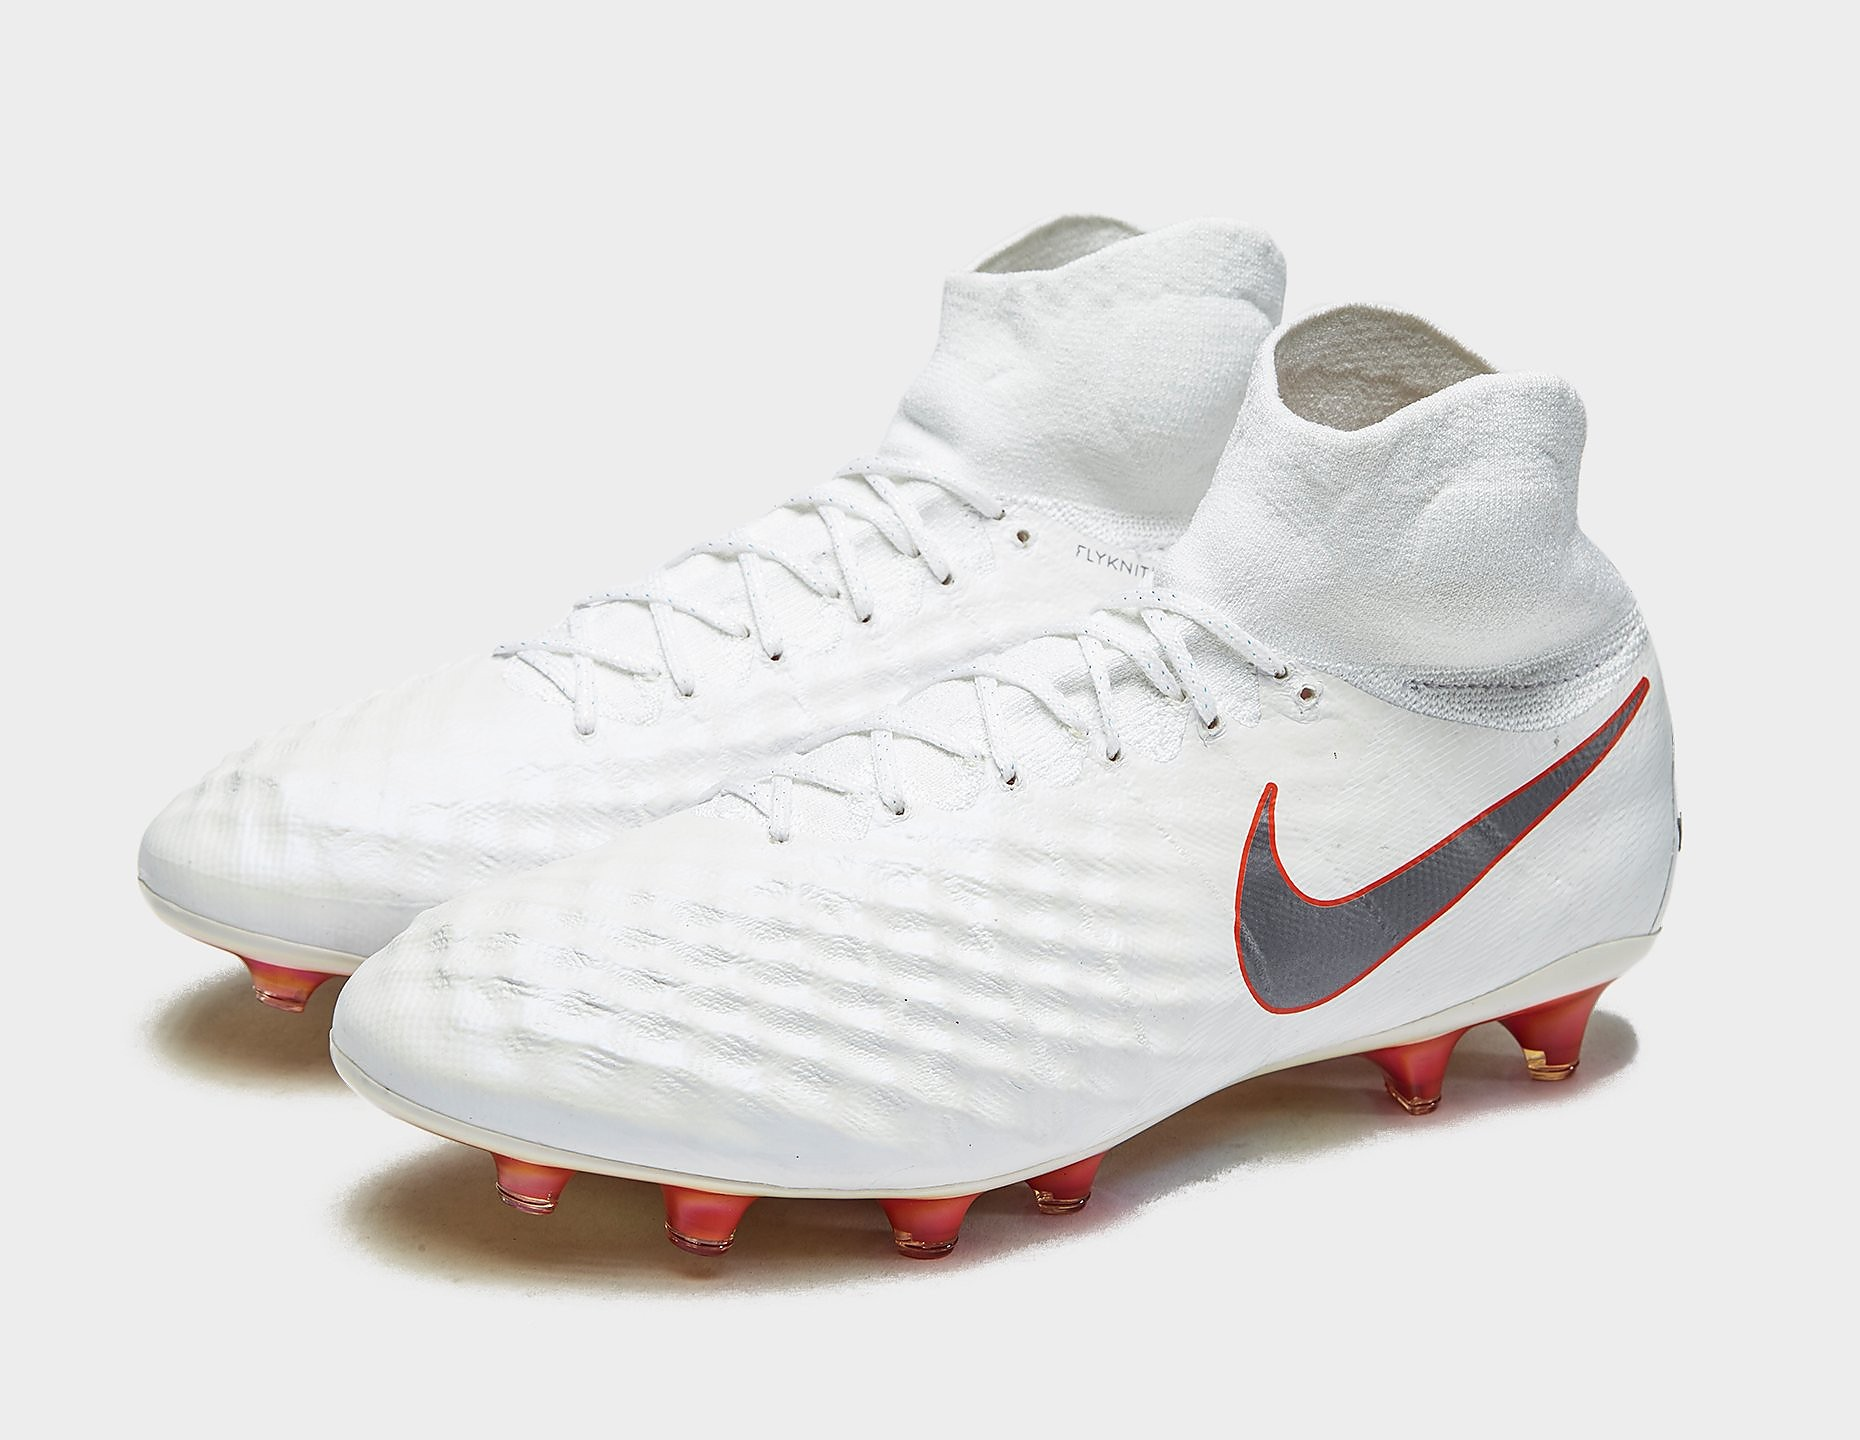 Nike Just Do It Magista Elite Dynamic Fit FG